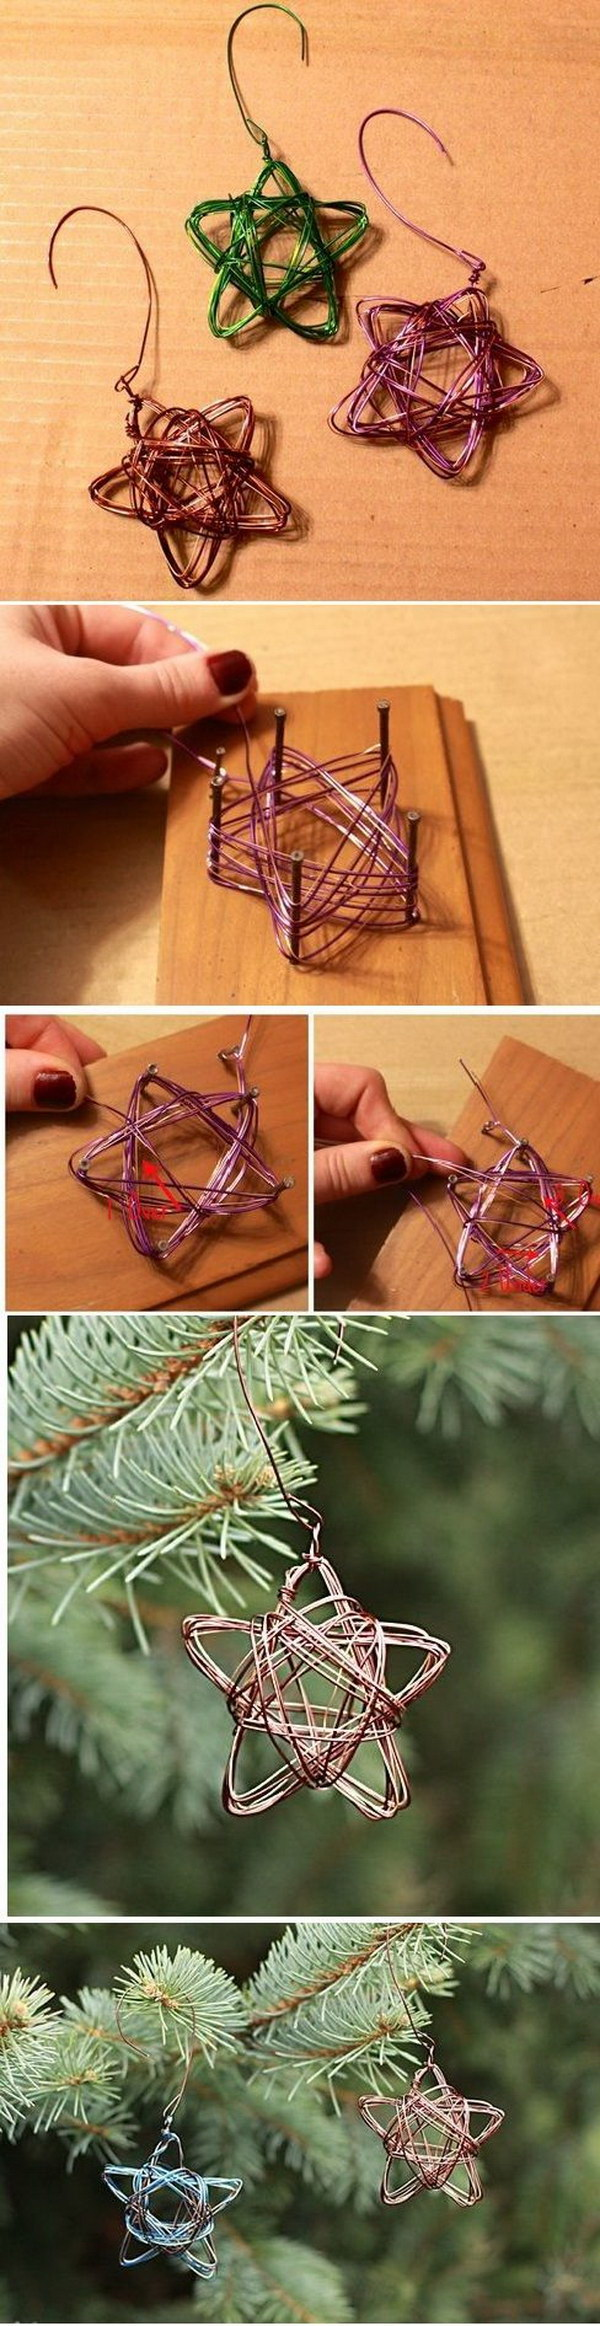 Handmade Star Wire Ornament.